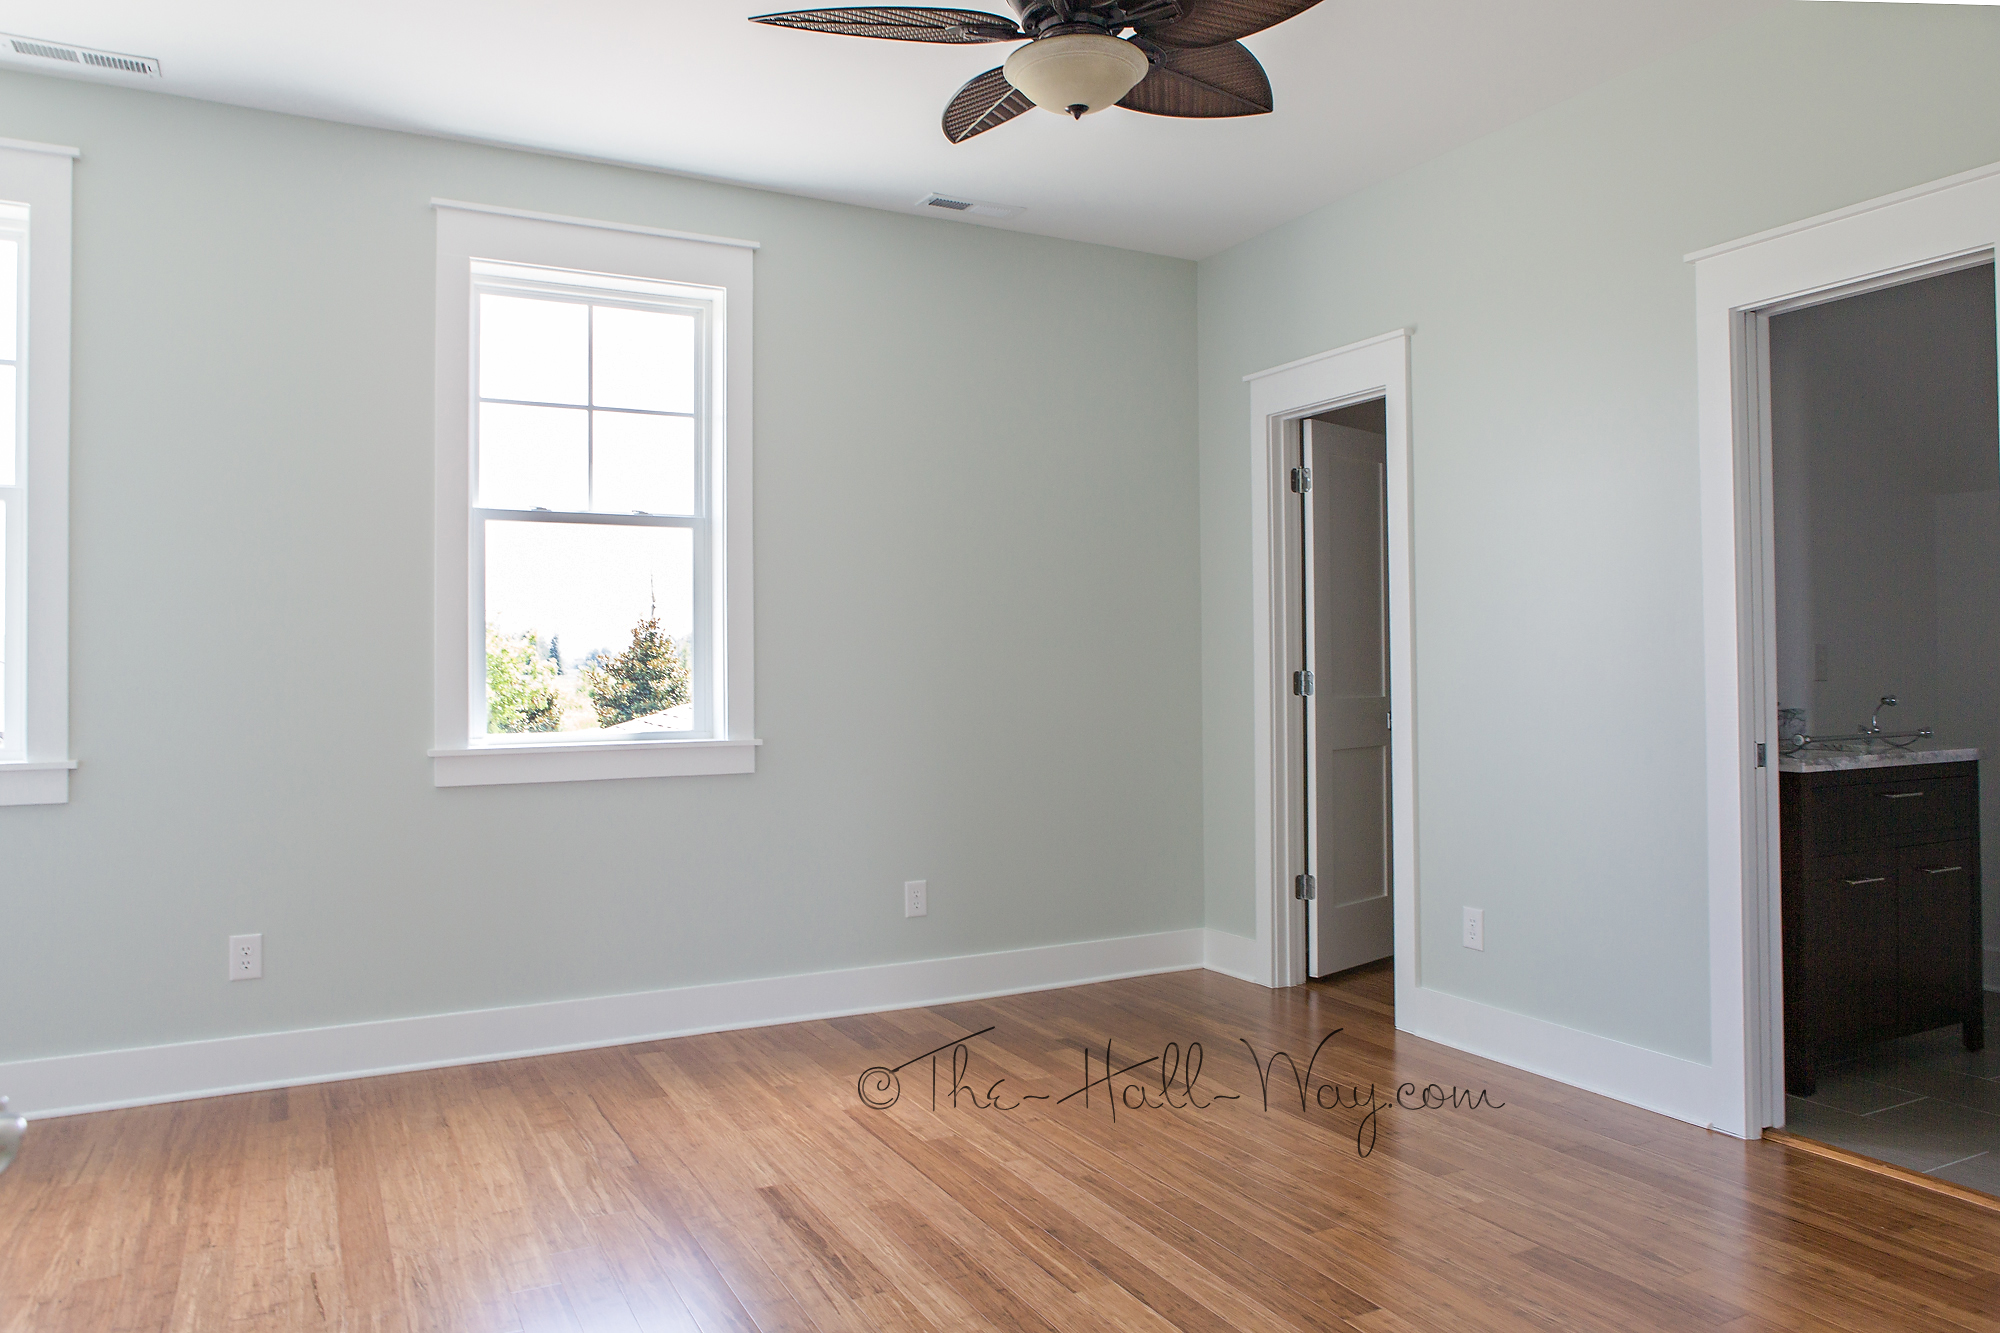 Top Paint Colors For Bedrooms Eastover Cottage The Upstairs The Hall Way